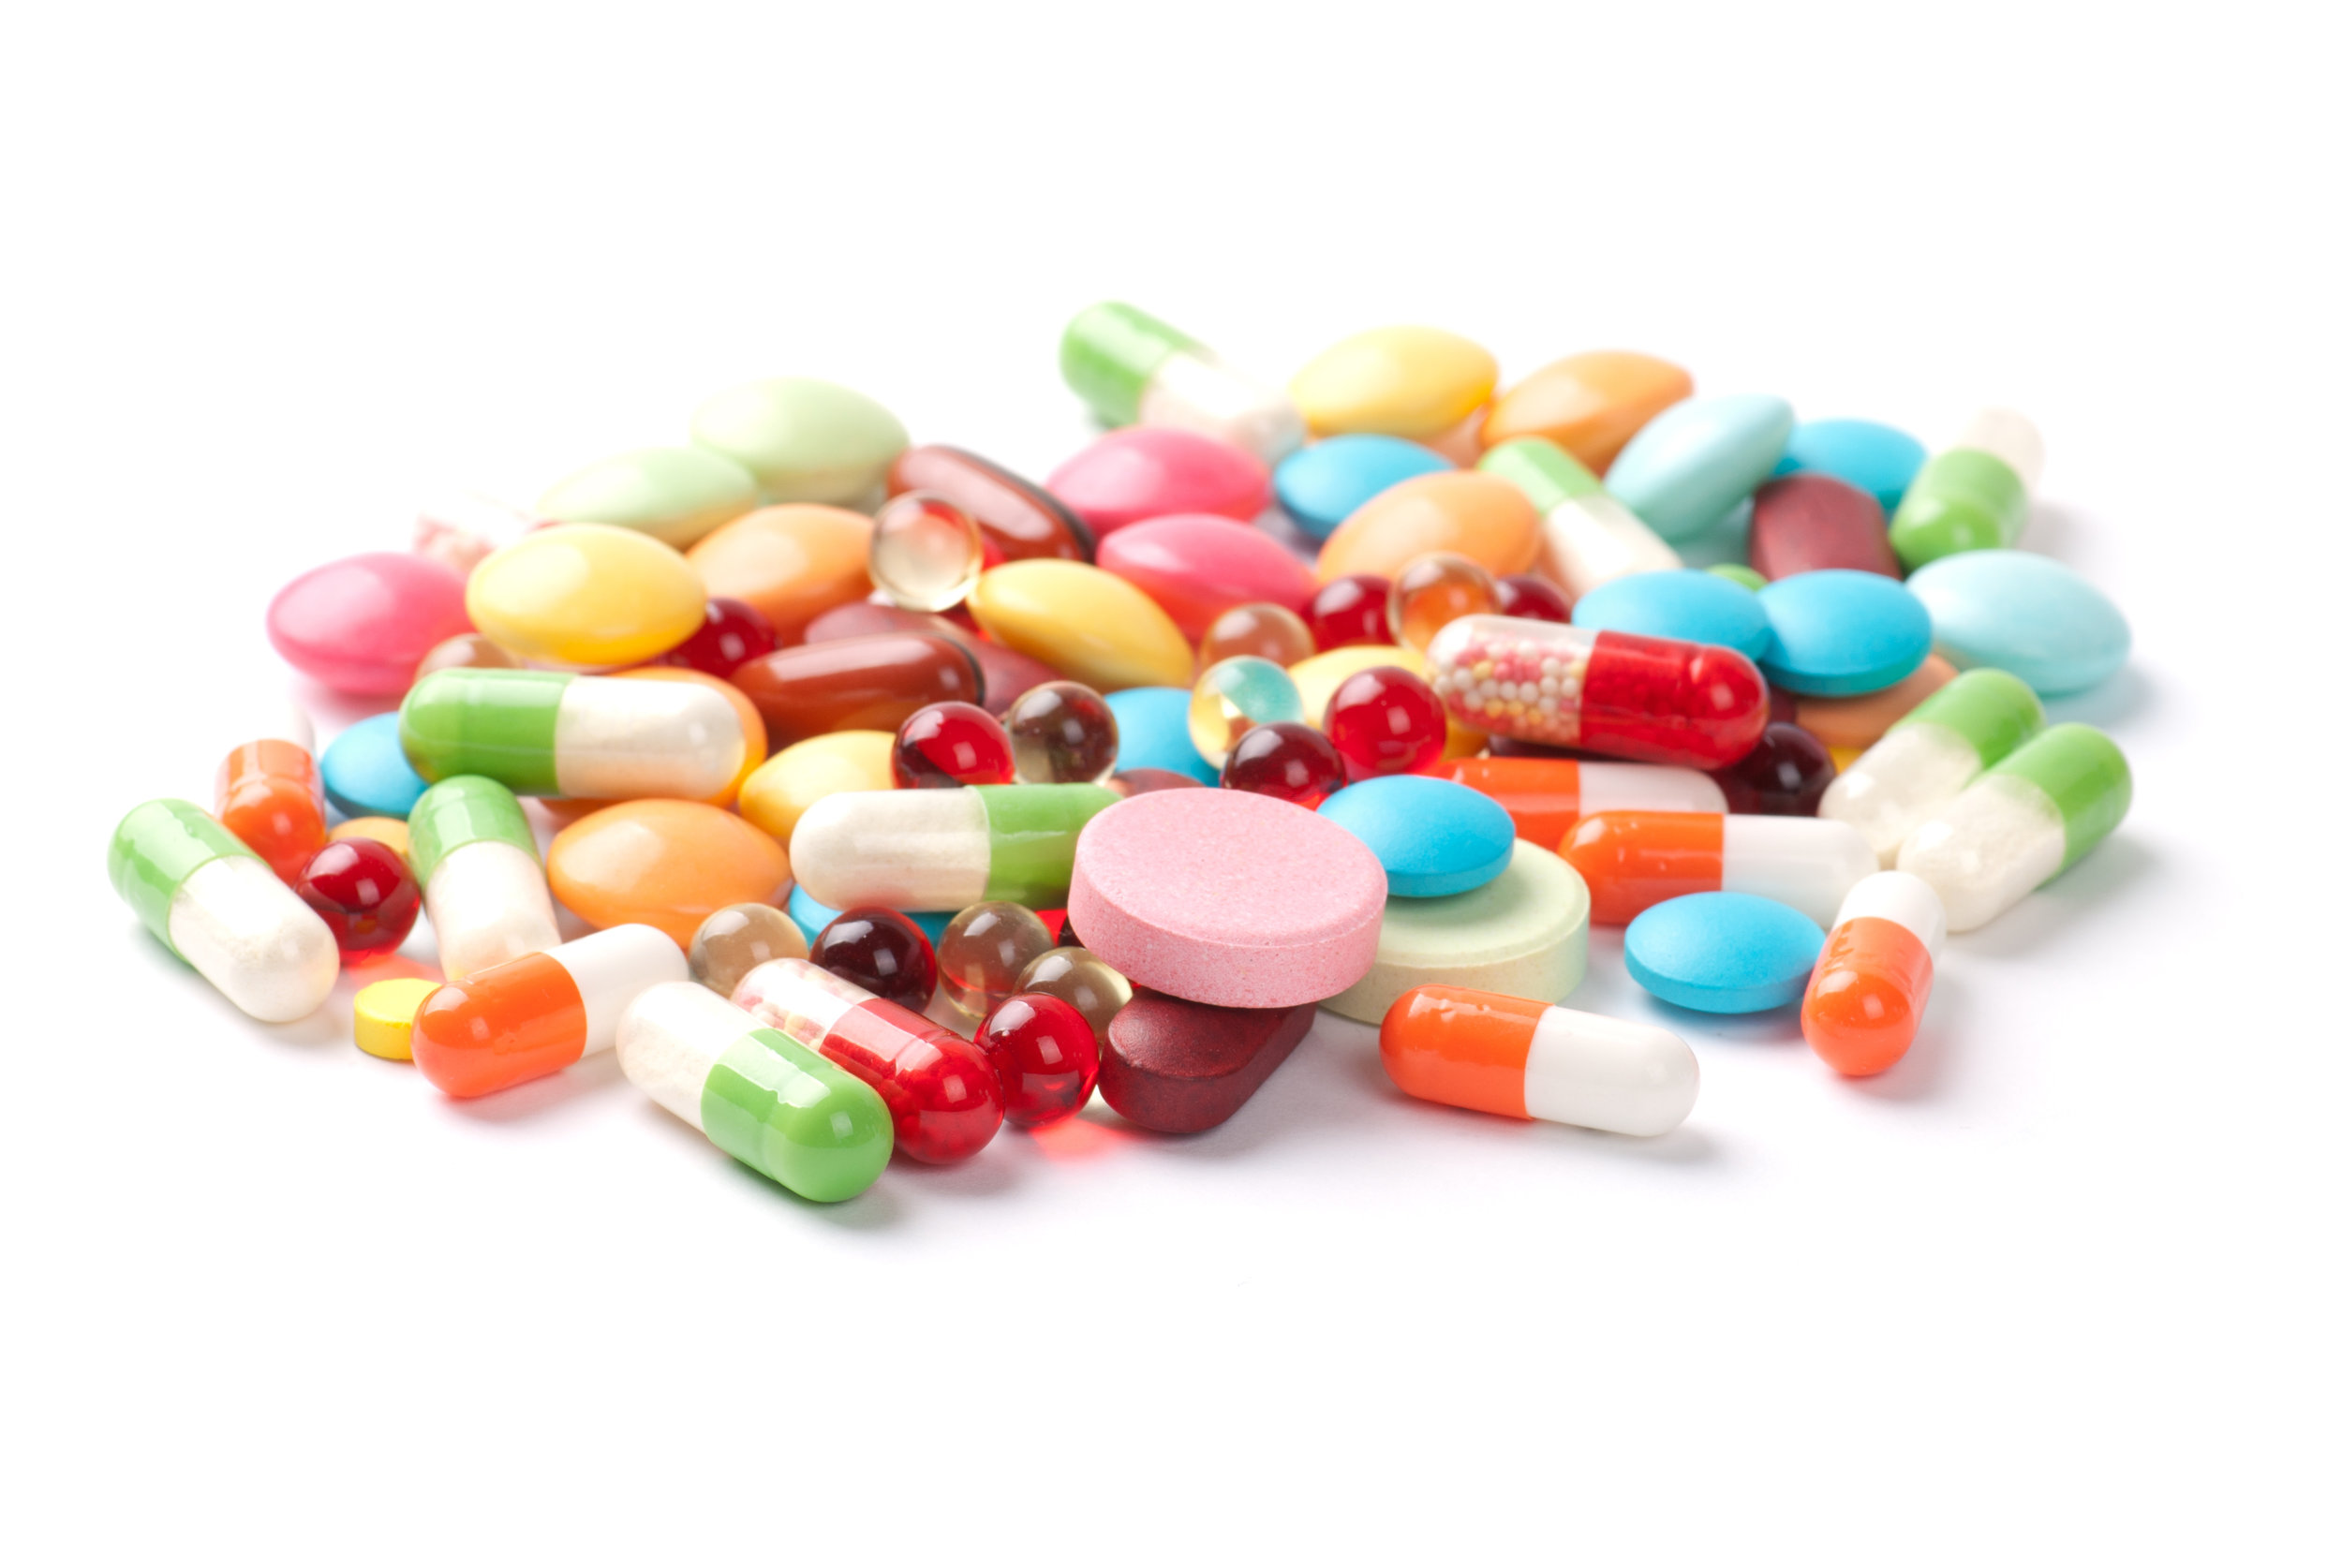 Am I taking too many medications? -